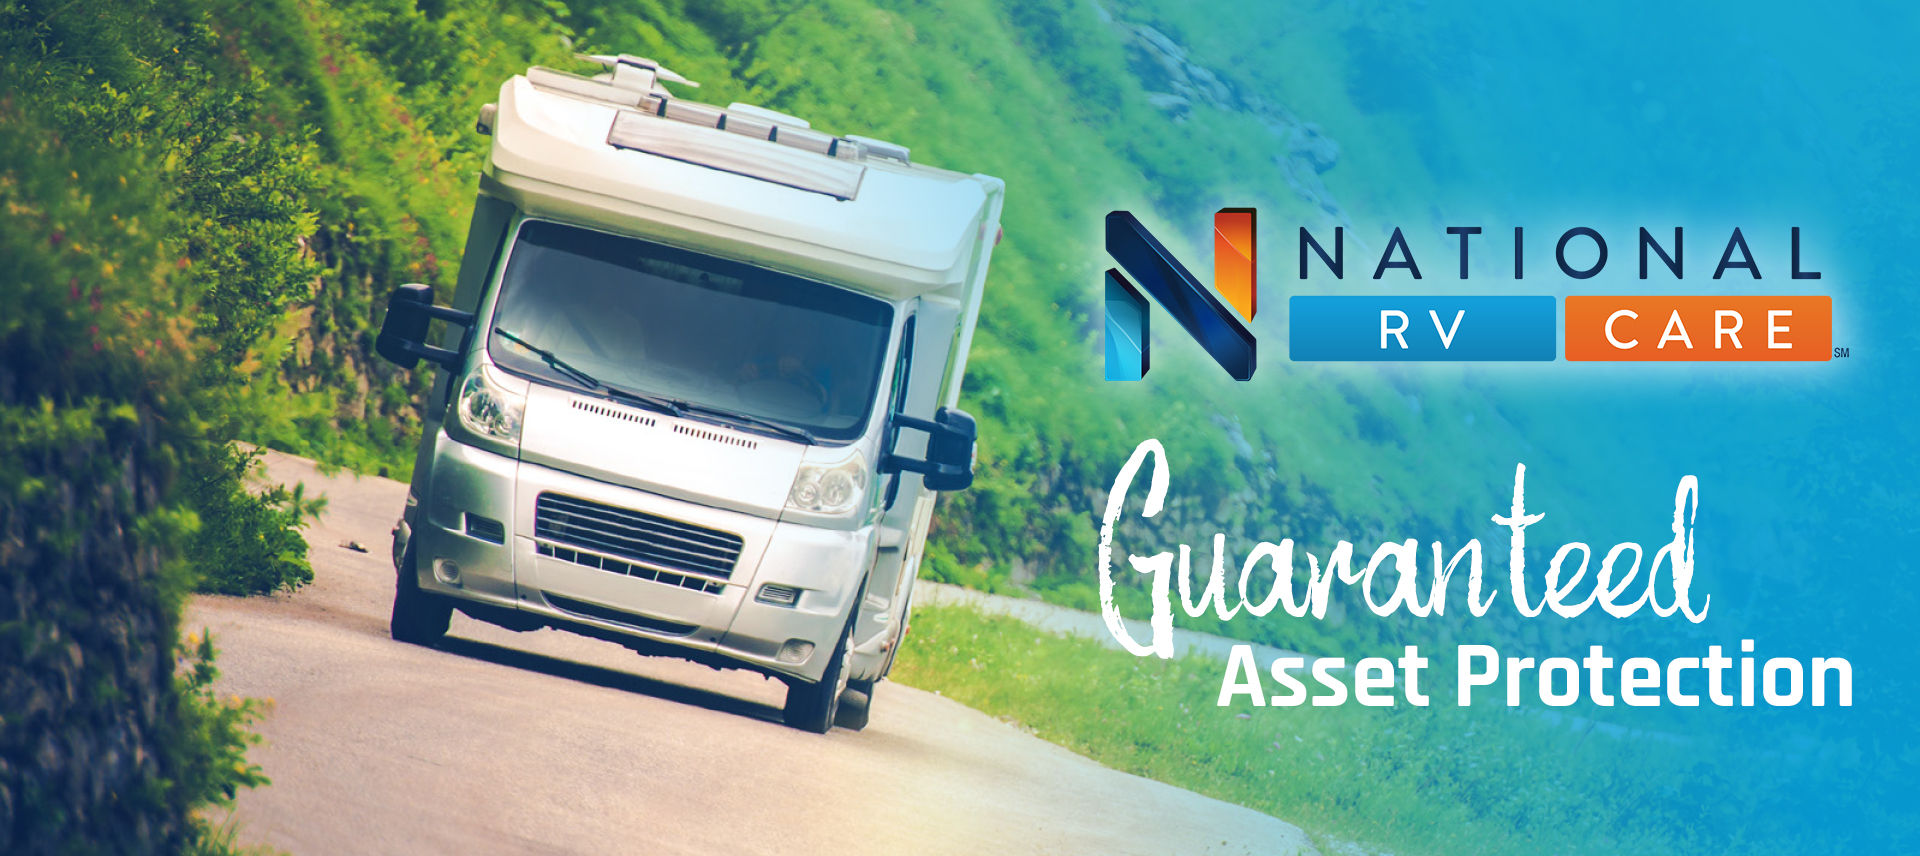 National RV Care   Guaranteed Asset Protection   Travelcamp